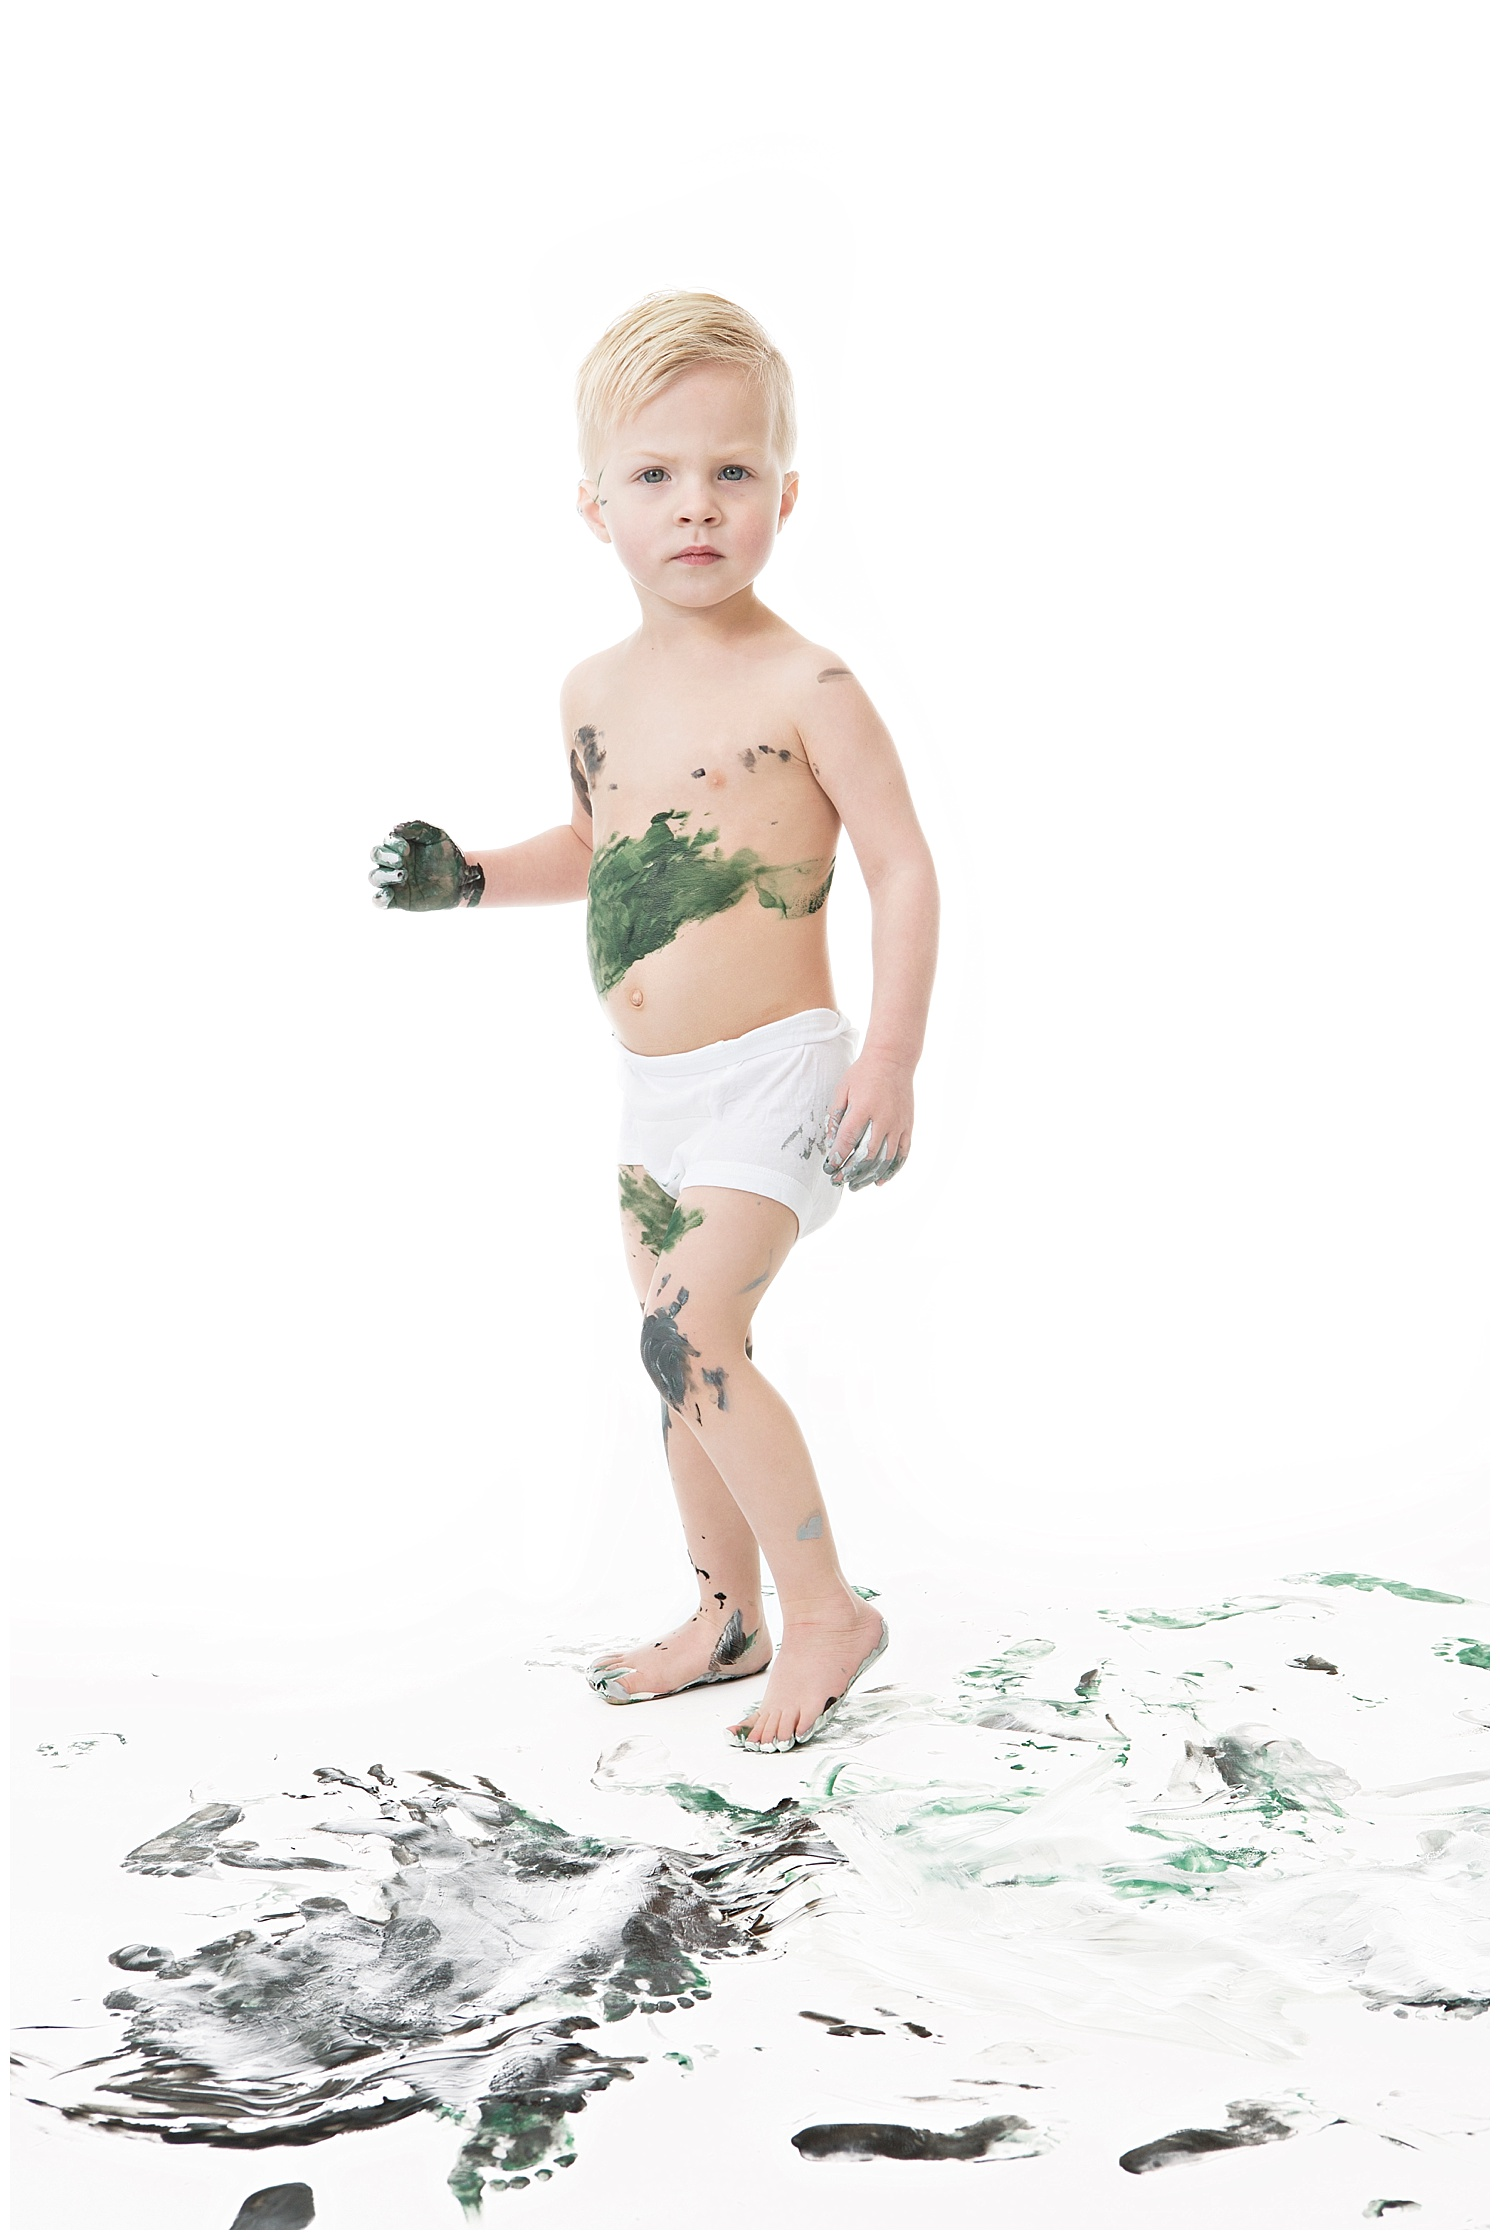 Andrea-Burolla-Photography-Denver-Childrens-photographer-kids-paint-session-little-boy-serious-playing-in-paint-green-black